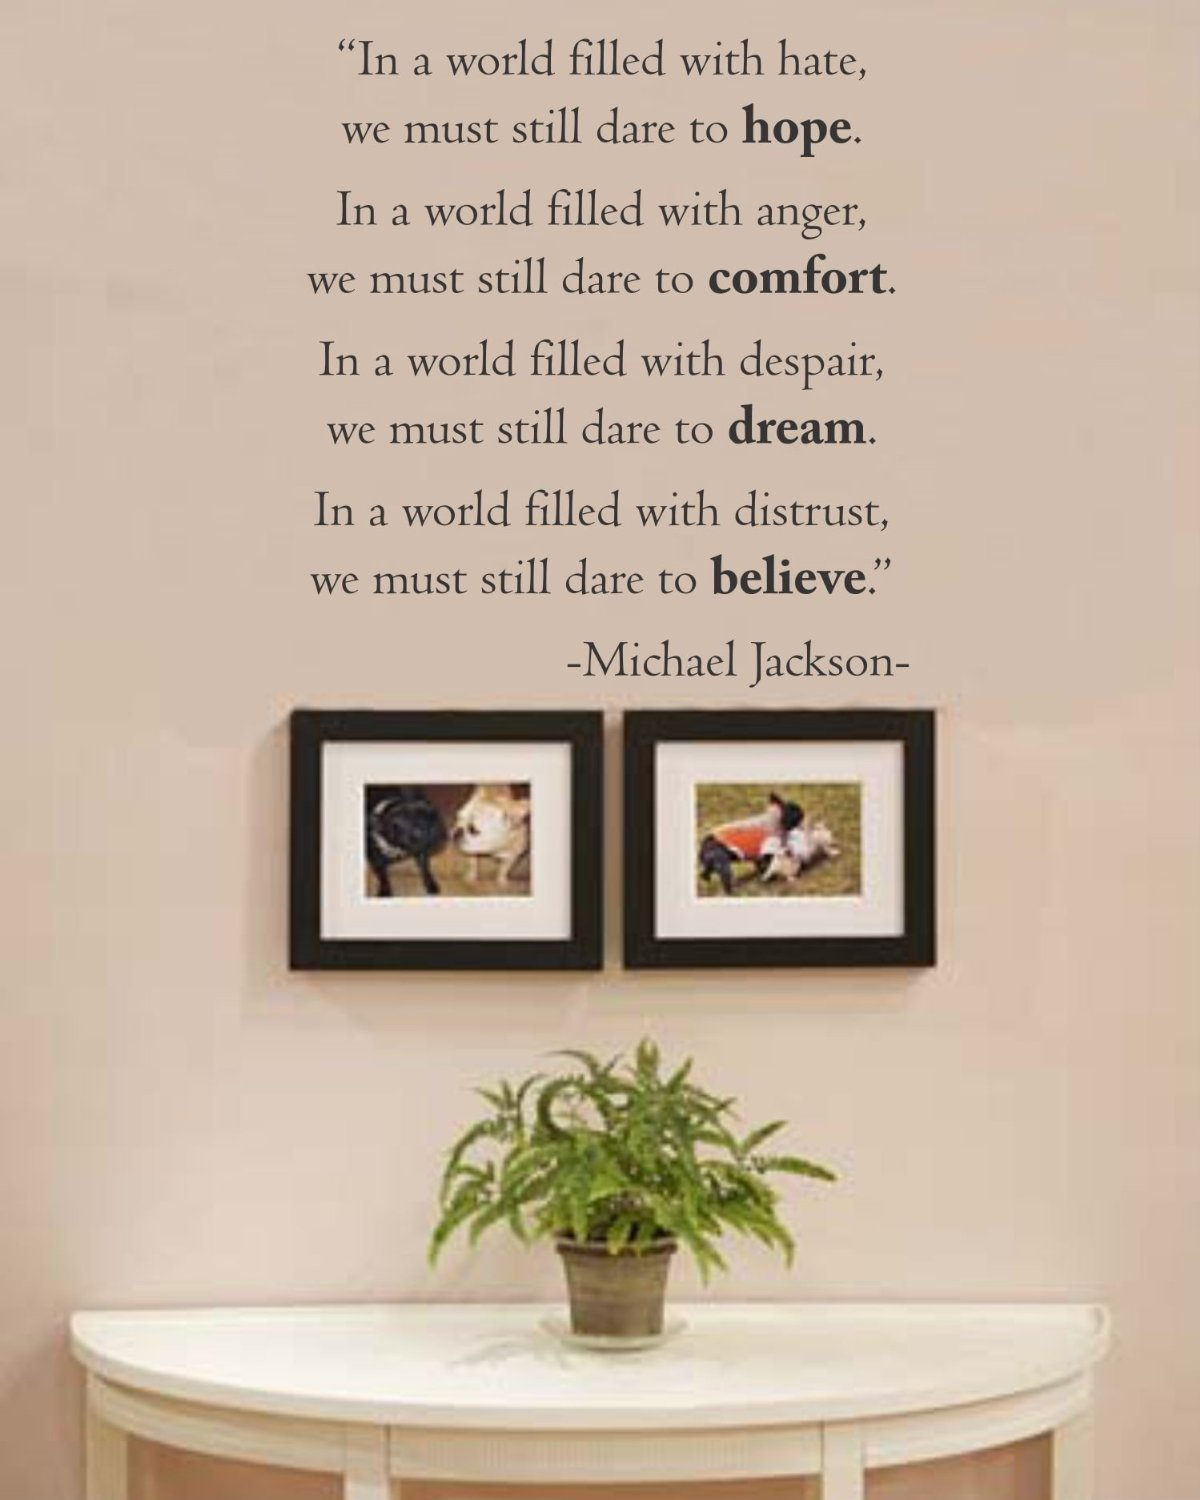 In a world filled with hate wall decal